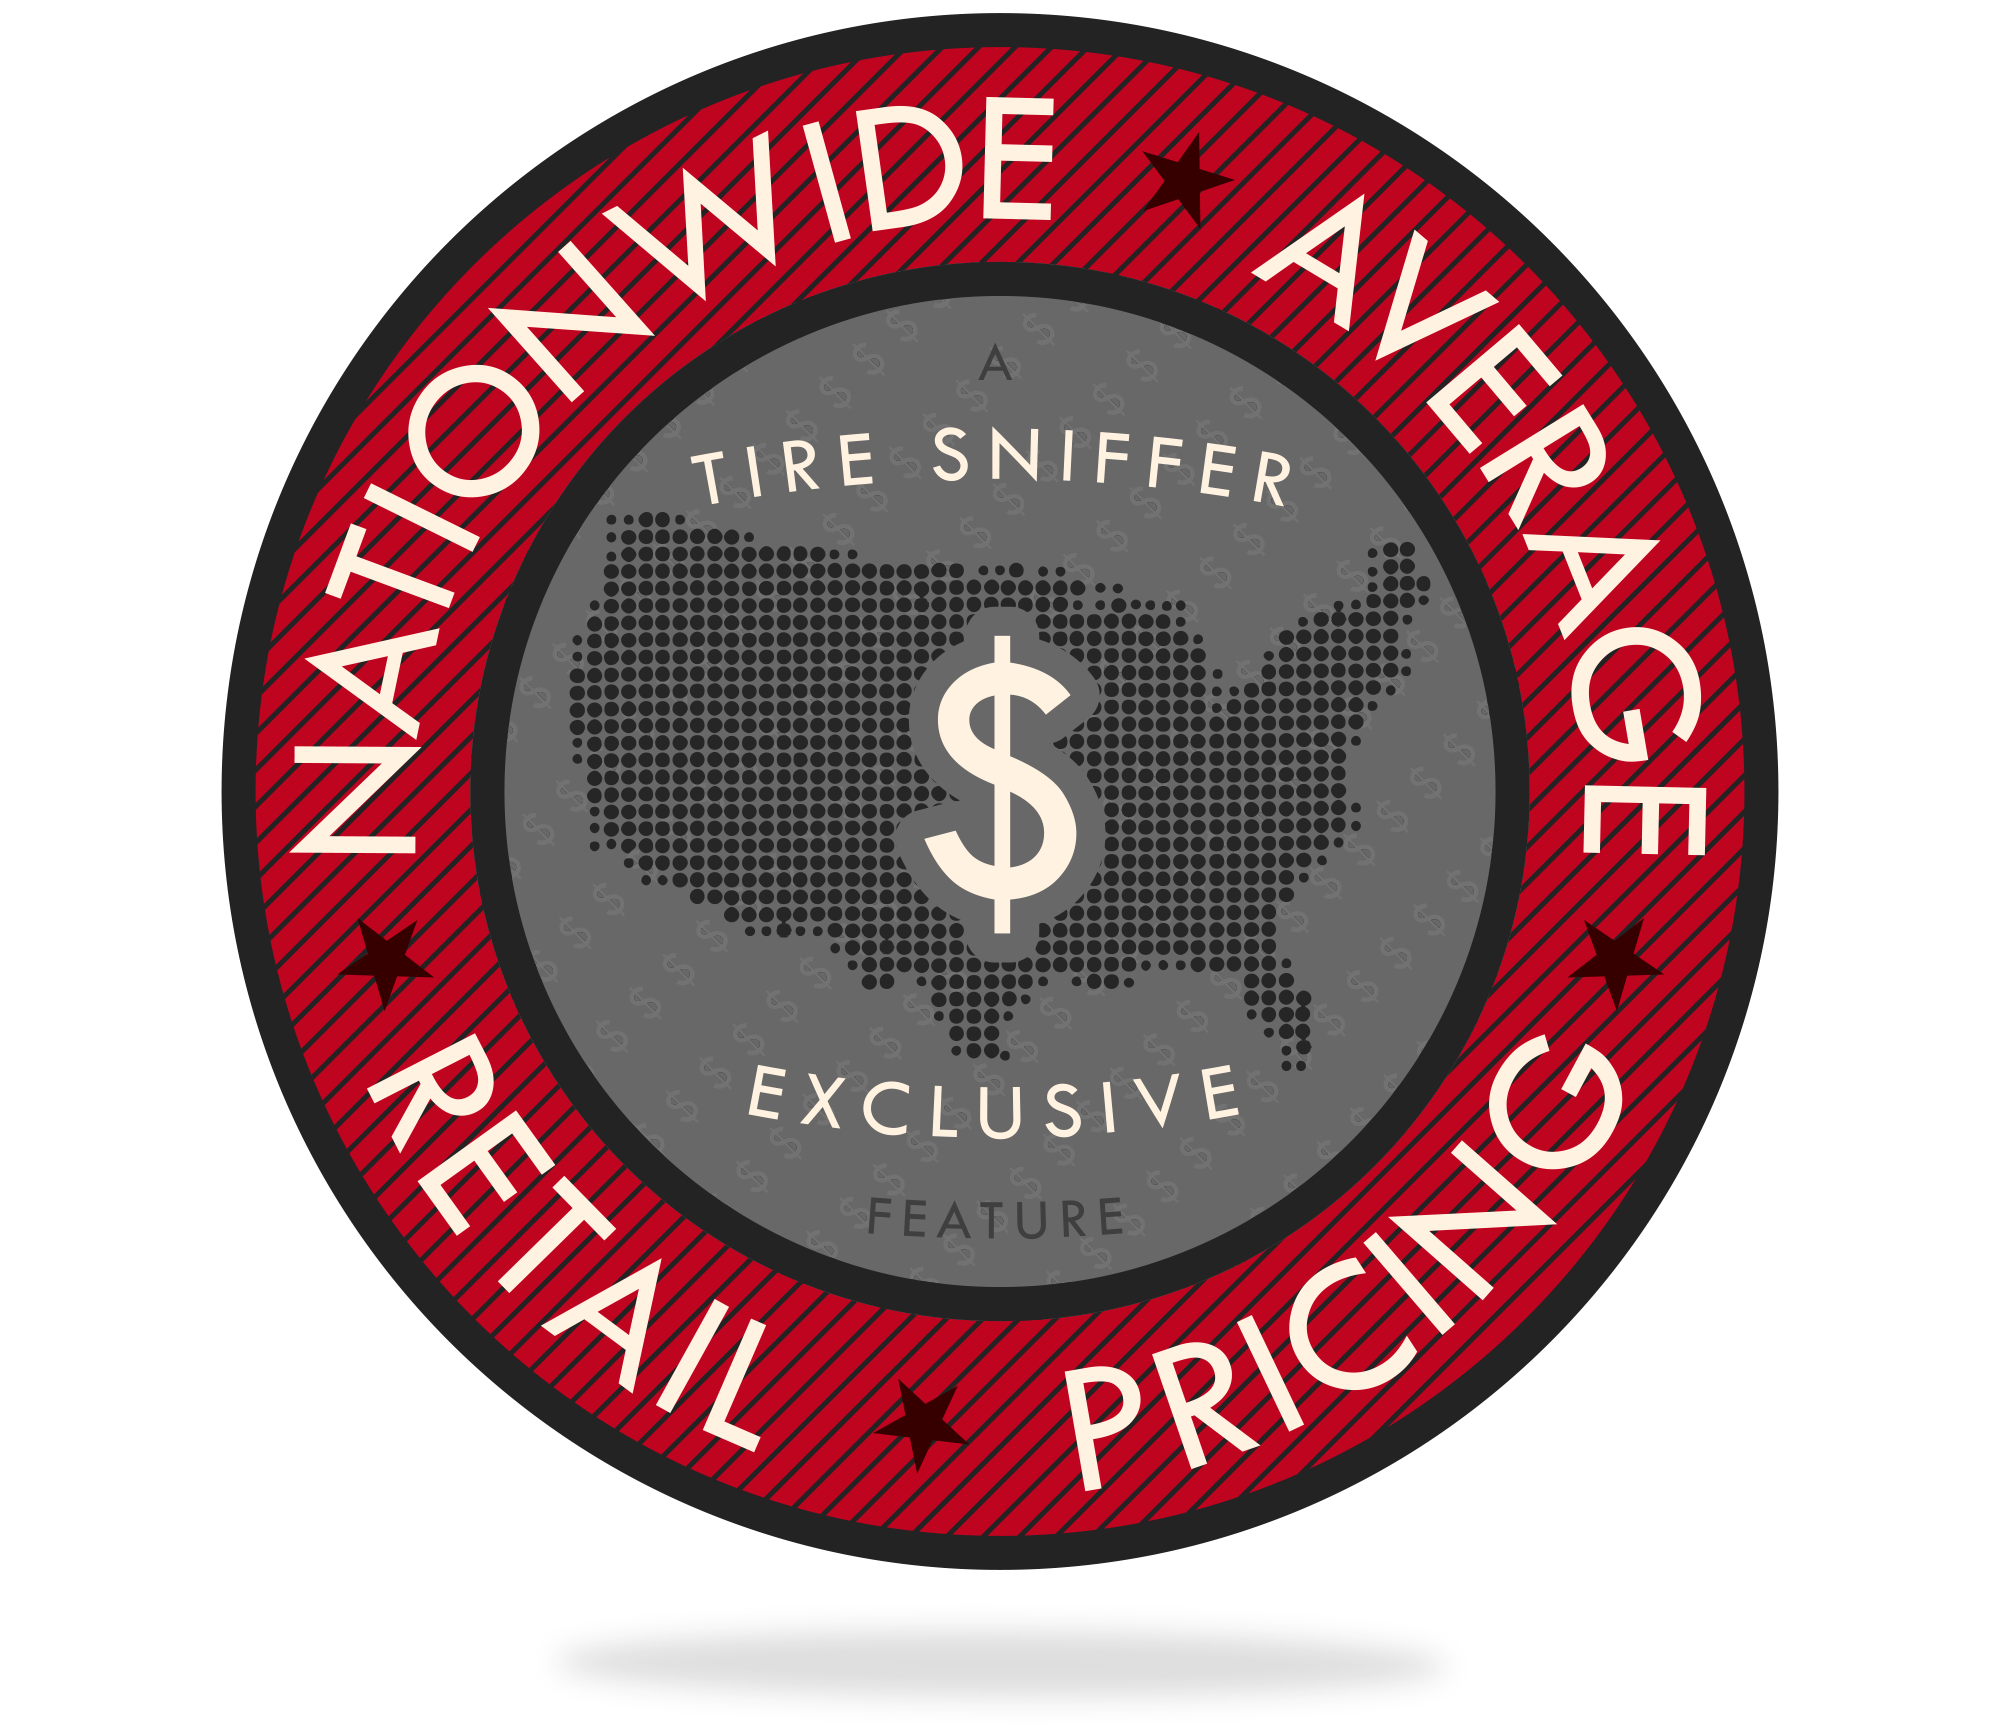 Nationwide-Average-Pricing-Logo-V3.7-w-shadow.png